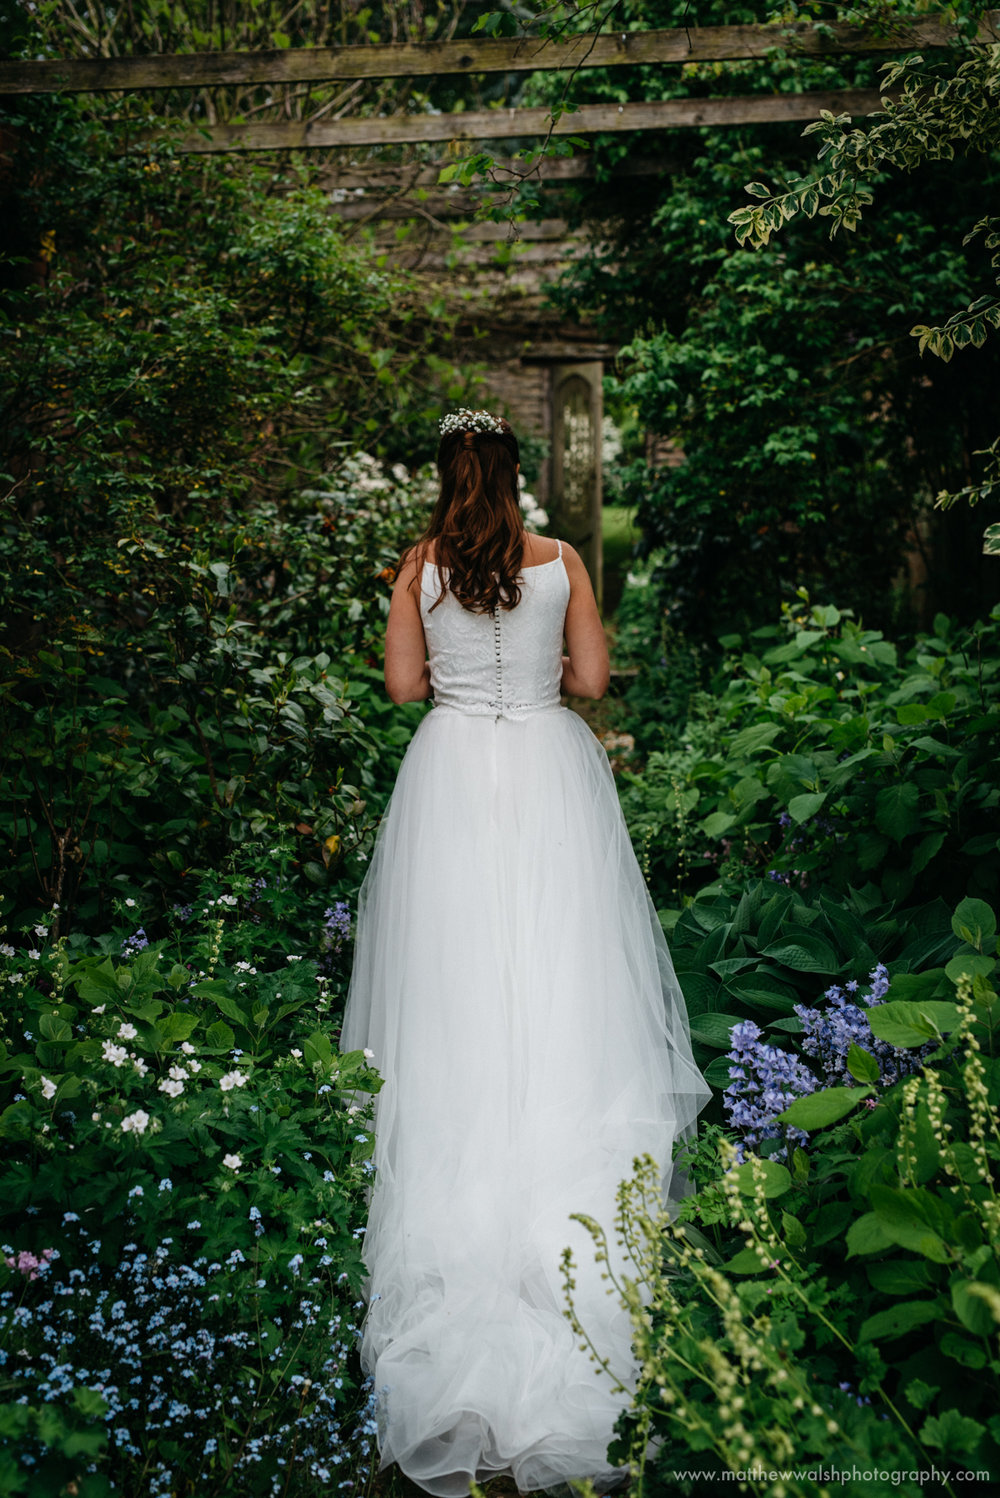 Showing off the back of the brides dress